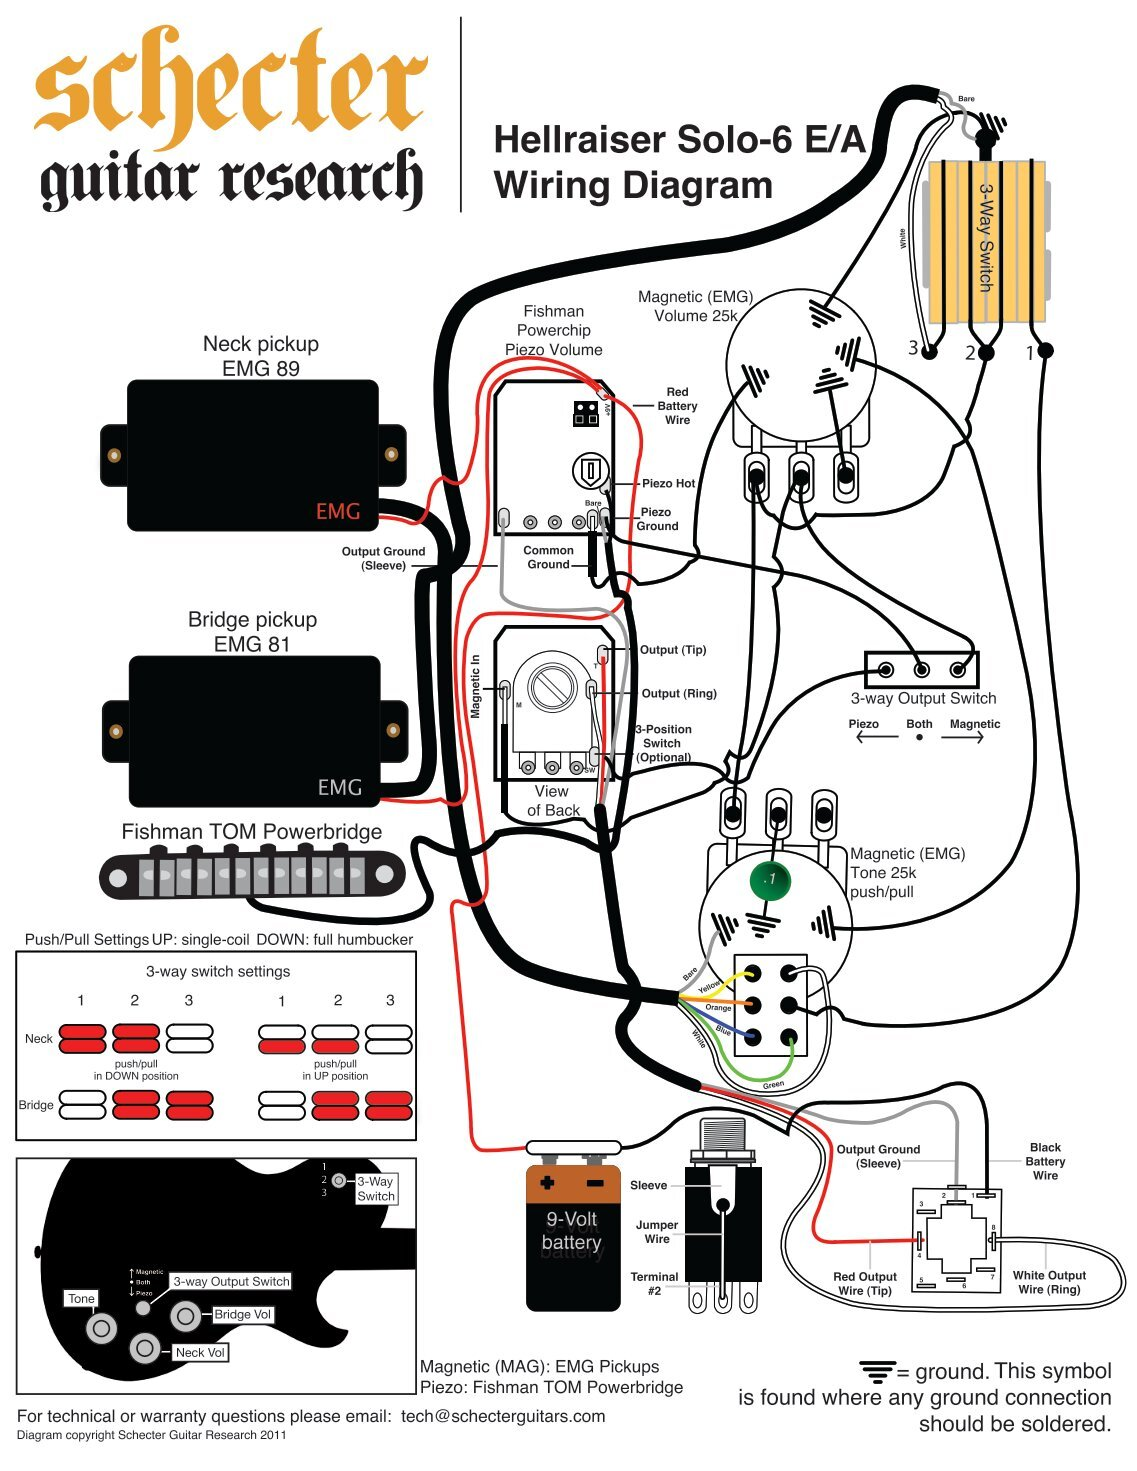 fishman pickups wiring diagrams fishman piezo wiring diagram with 1 free magazines from schecter.guitars.ru